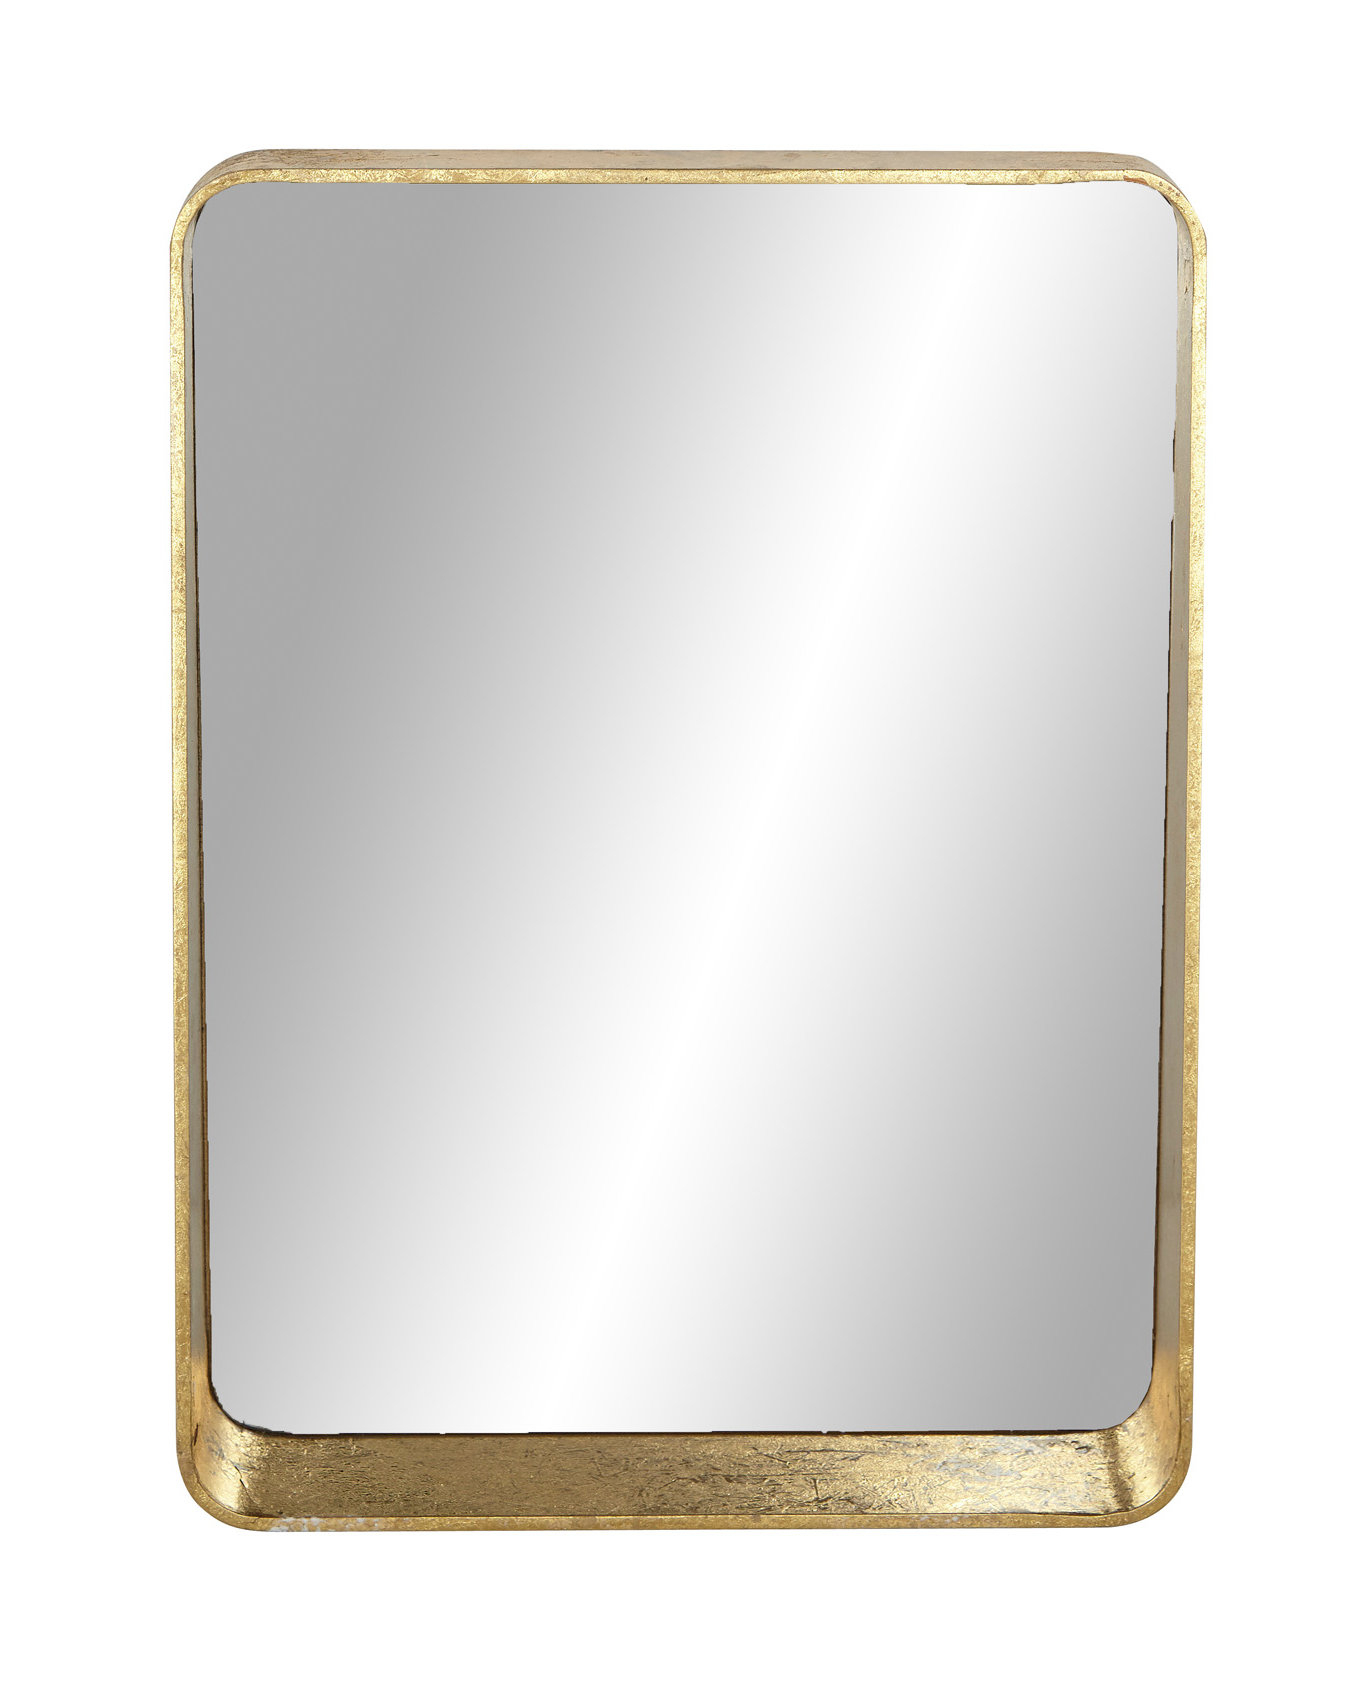 Ginyard Modern And Contemporary Accent Mirror With Peetz Modern Rustic Accent Mirrors (Image 14 of 30)